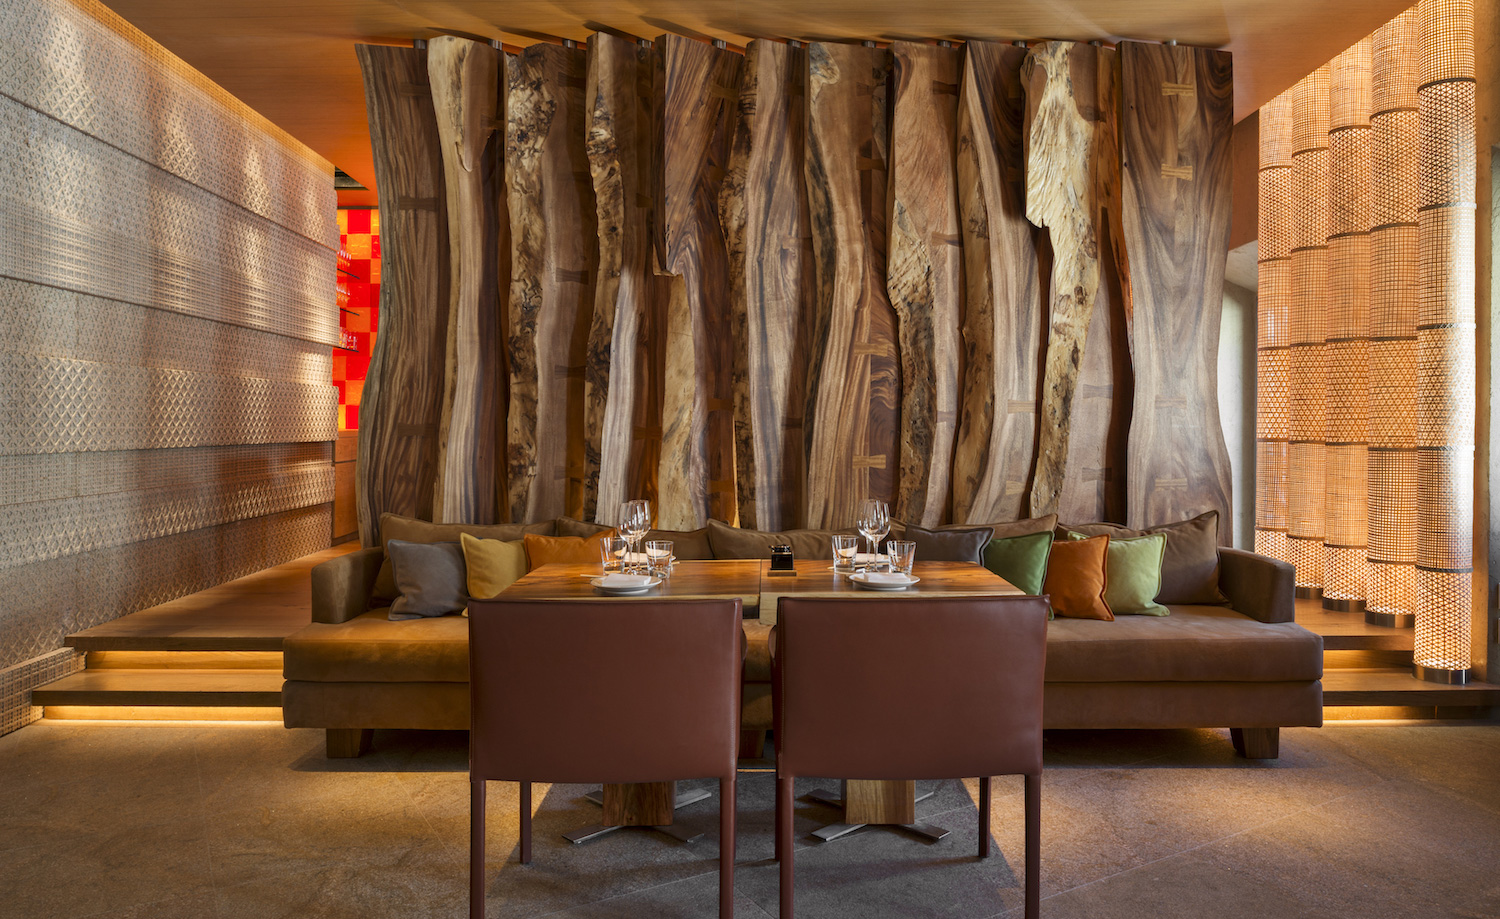 Zuma rome restaurant review italy wallpaper